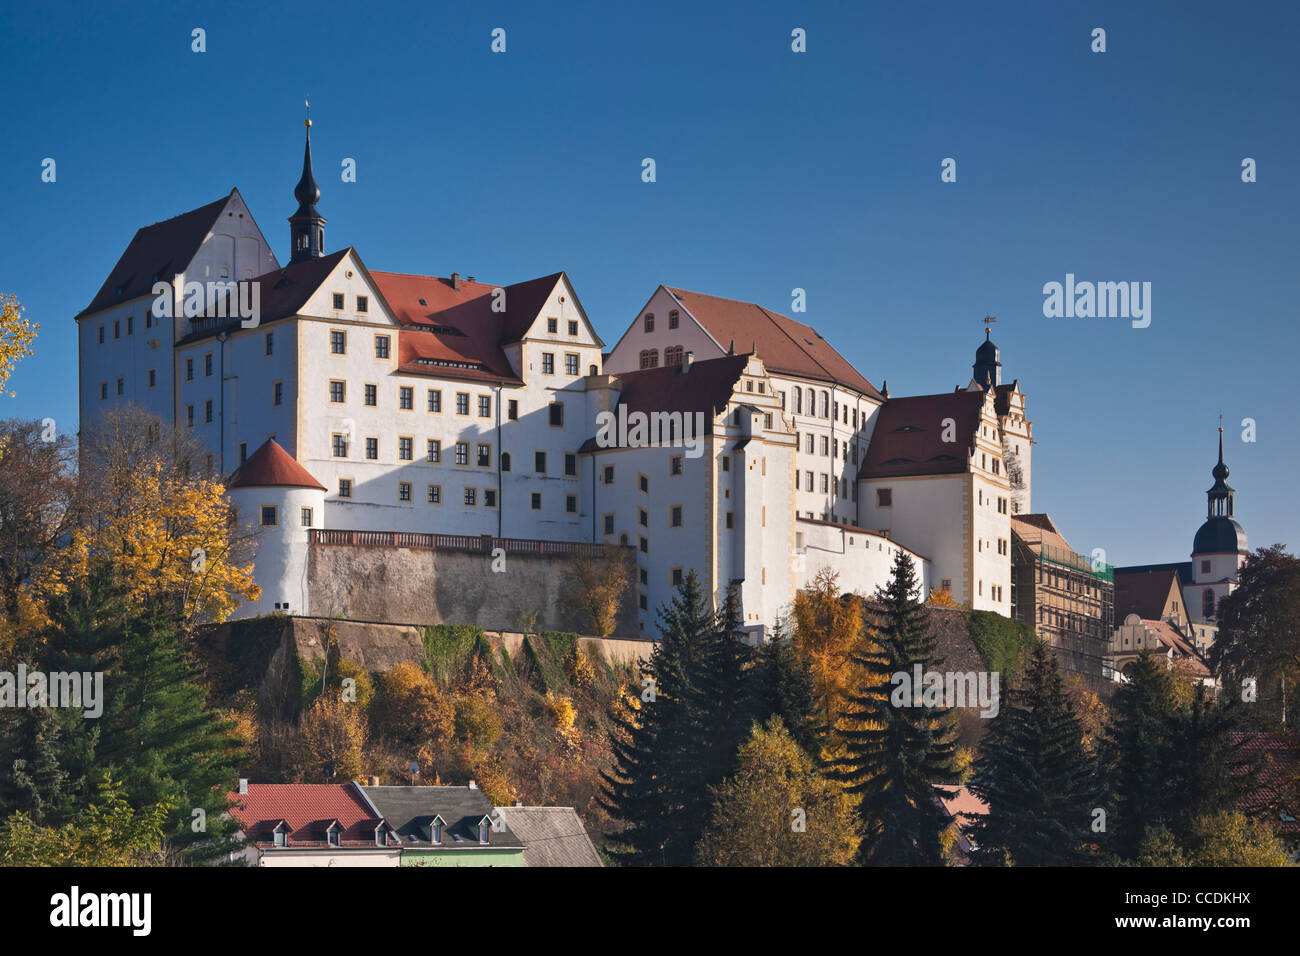 n 1046, first documented Colditz Castle near Leipzig, Saxony, Germany, Europe - Stock Image